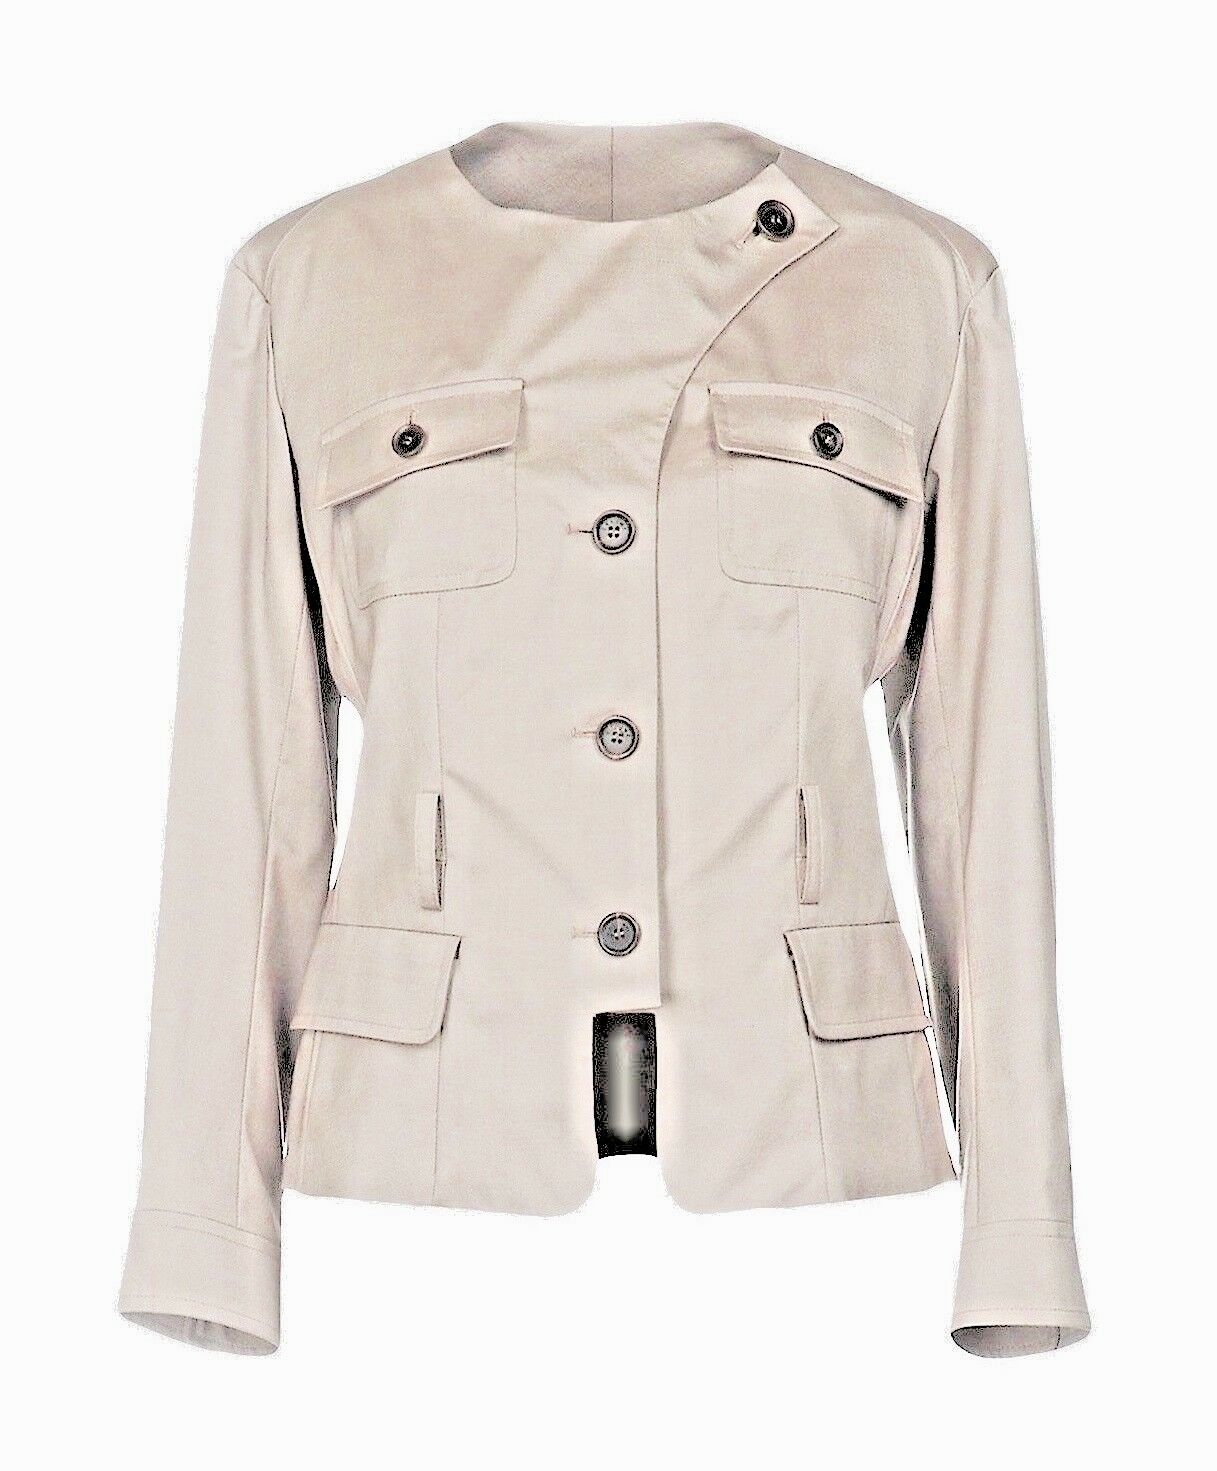 Auth Fab CELINE Wool   SIlk Blazer, EU38   UK8-10